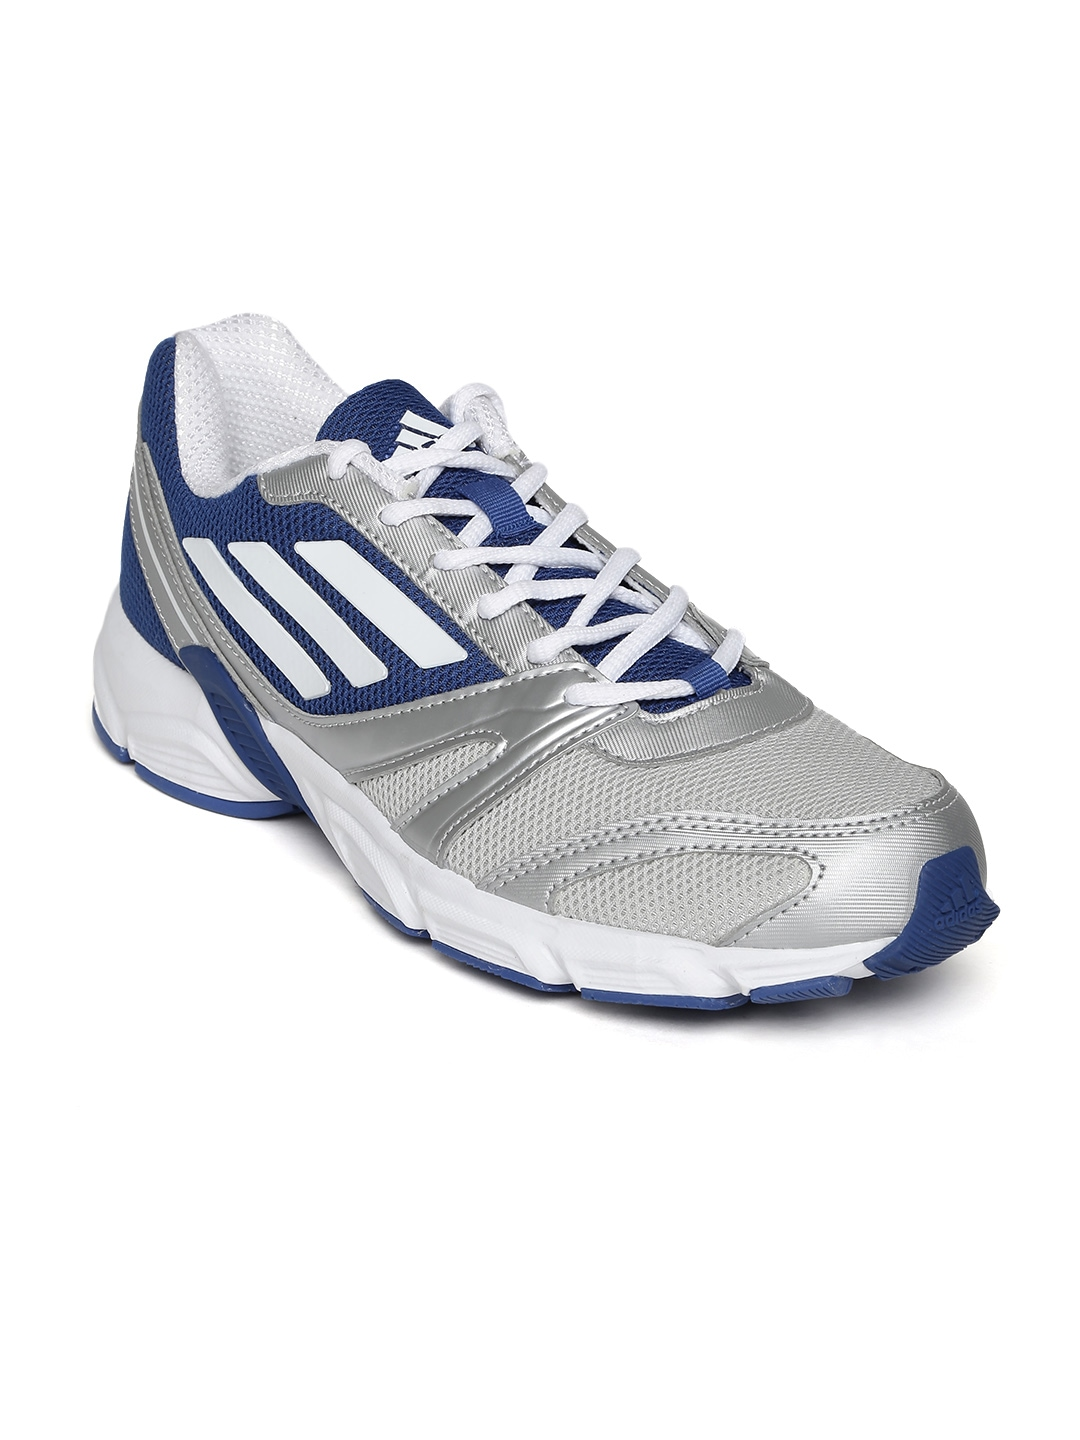 myntra adidas grey blue hachi running shoes 747928